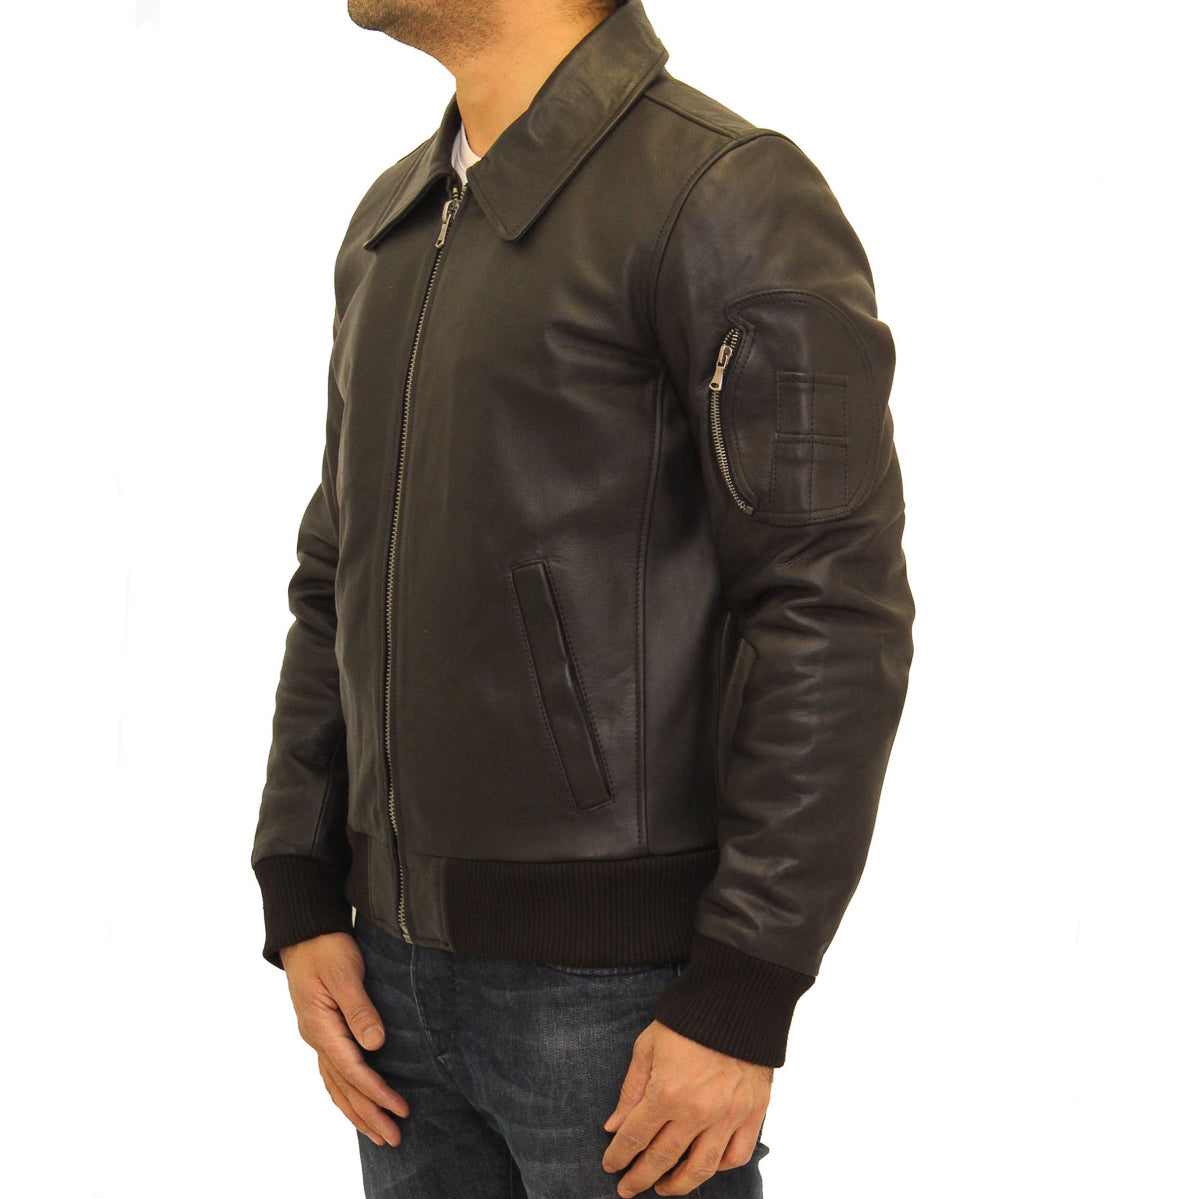 b01fc0636cf Mens aniline cowhide leather M2 army style bomber jacket – A to Z ...